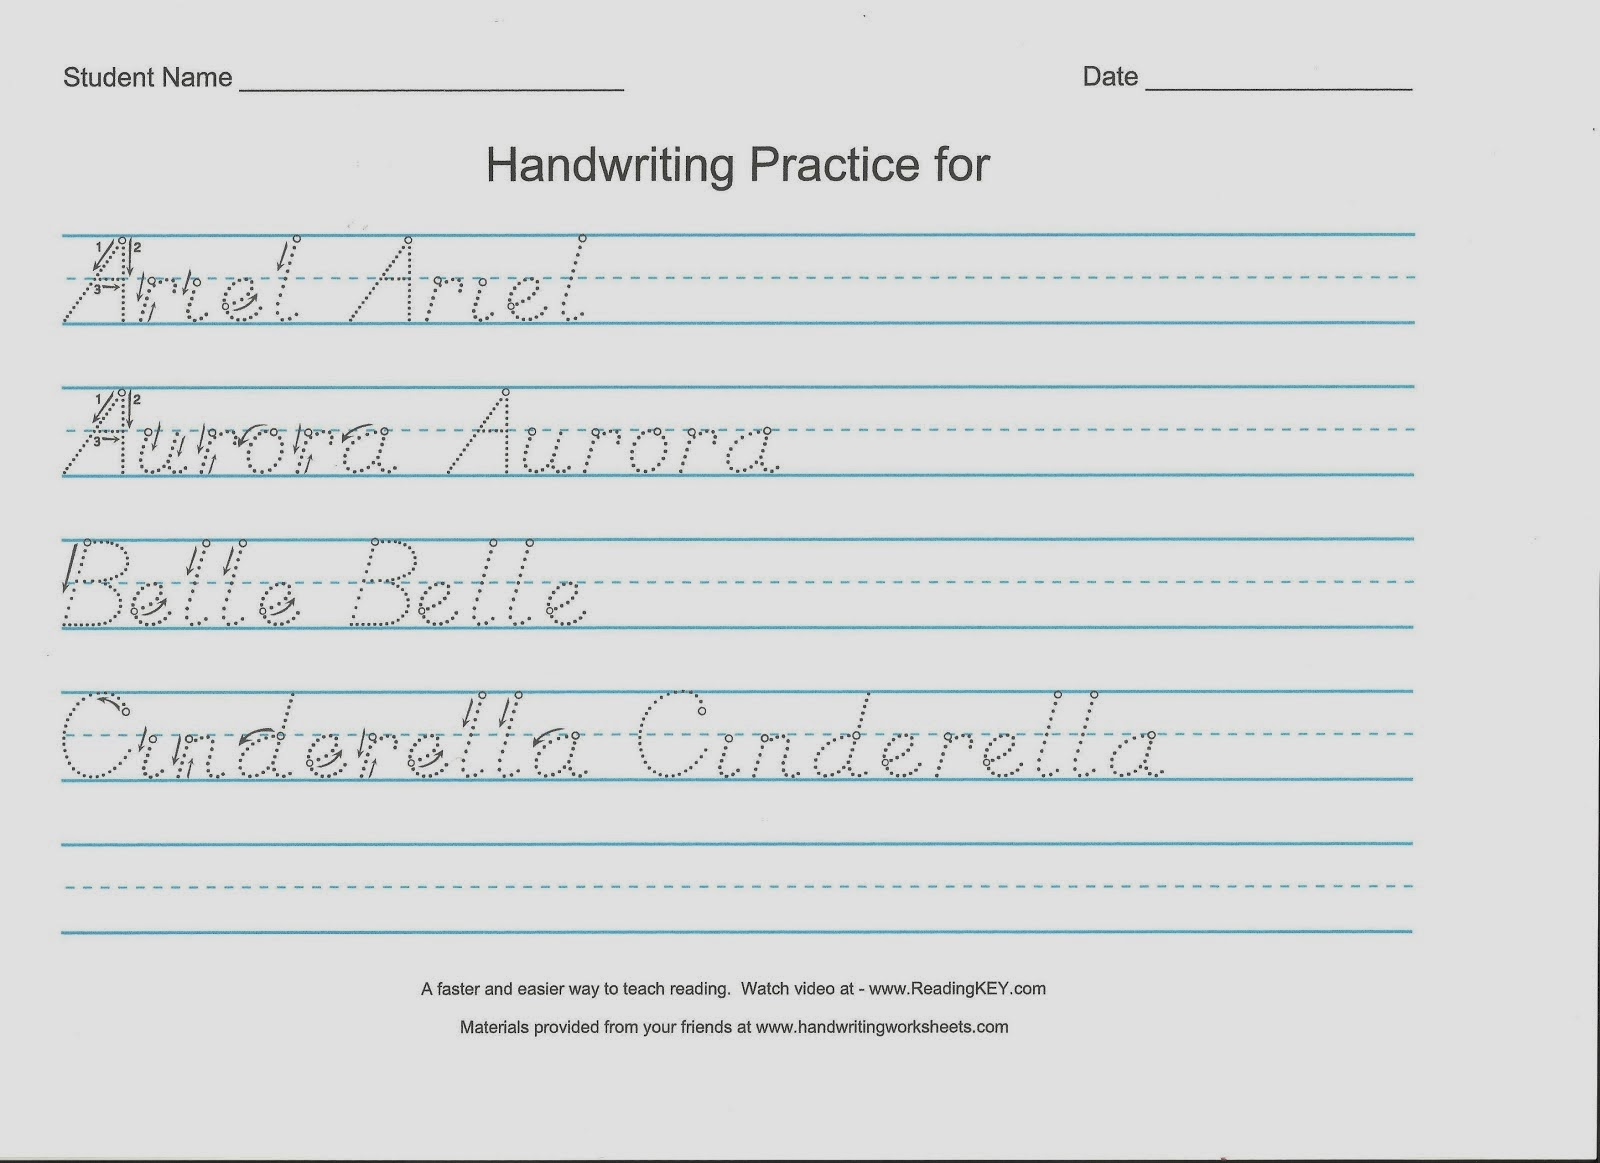 handwriting practice sheets hand writing. Black Bedroom Furniture Sets. Home Design Ideas